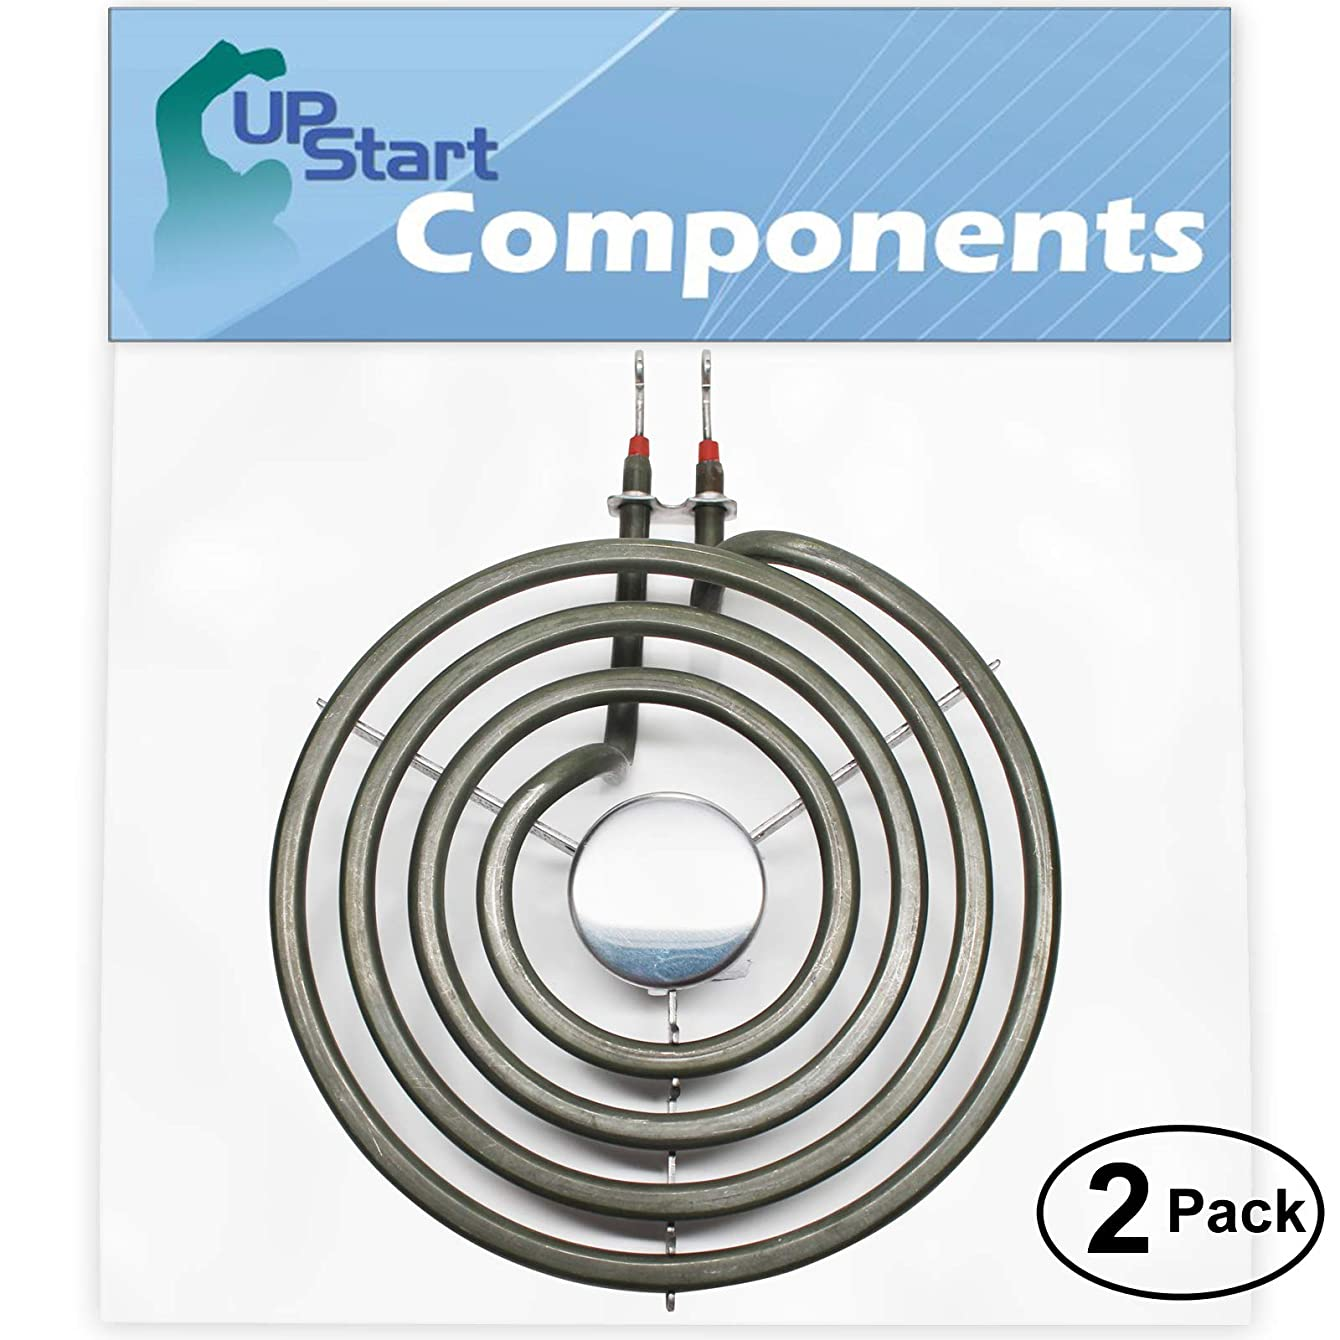 2-Pack Replacement Magic Chef 35HN-2CW 6 inch 4 Turns Surface Burner Element - Compatible Magic Chef 660532 Heating Element for Range, Stove & Cooktop